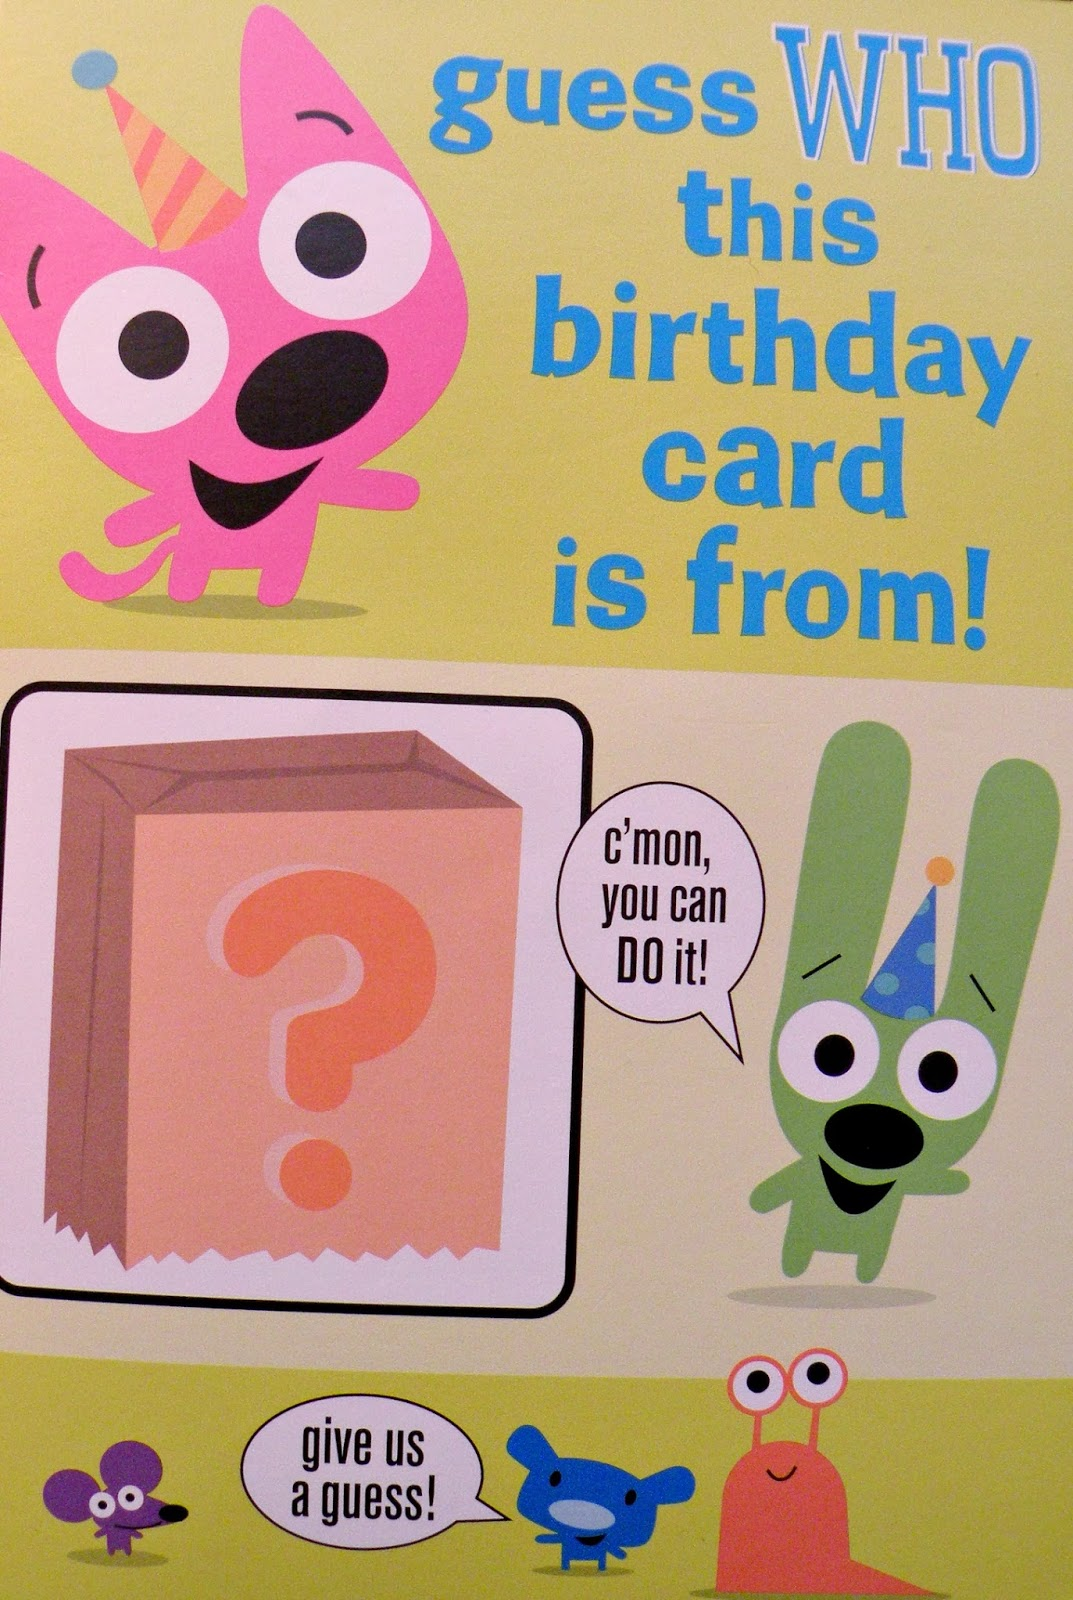 Missionary Mail cRaZy Cards – Hoops and Yoyo Birthday Card